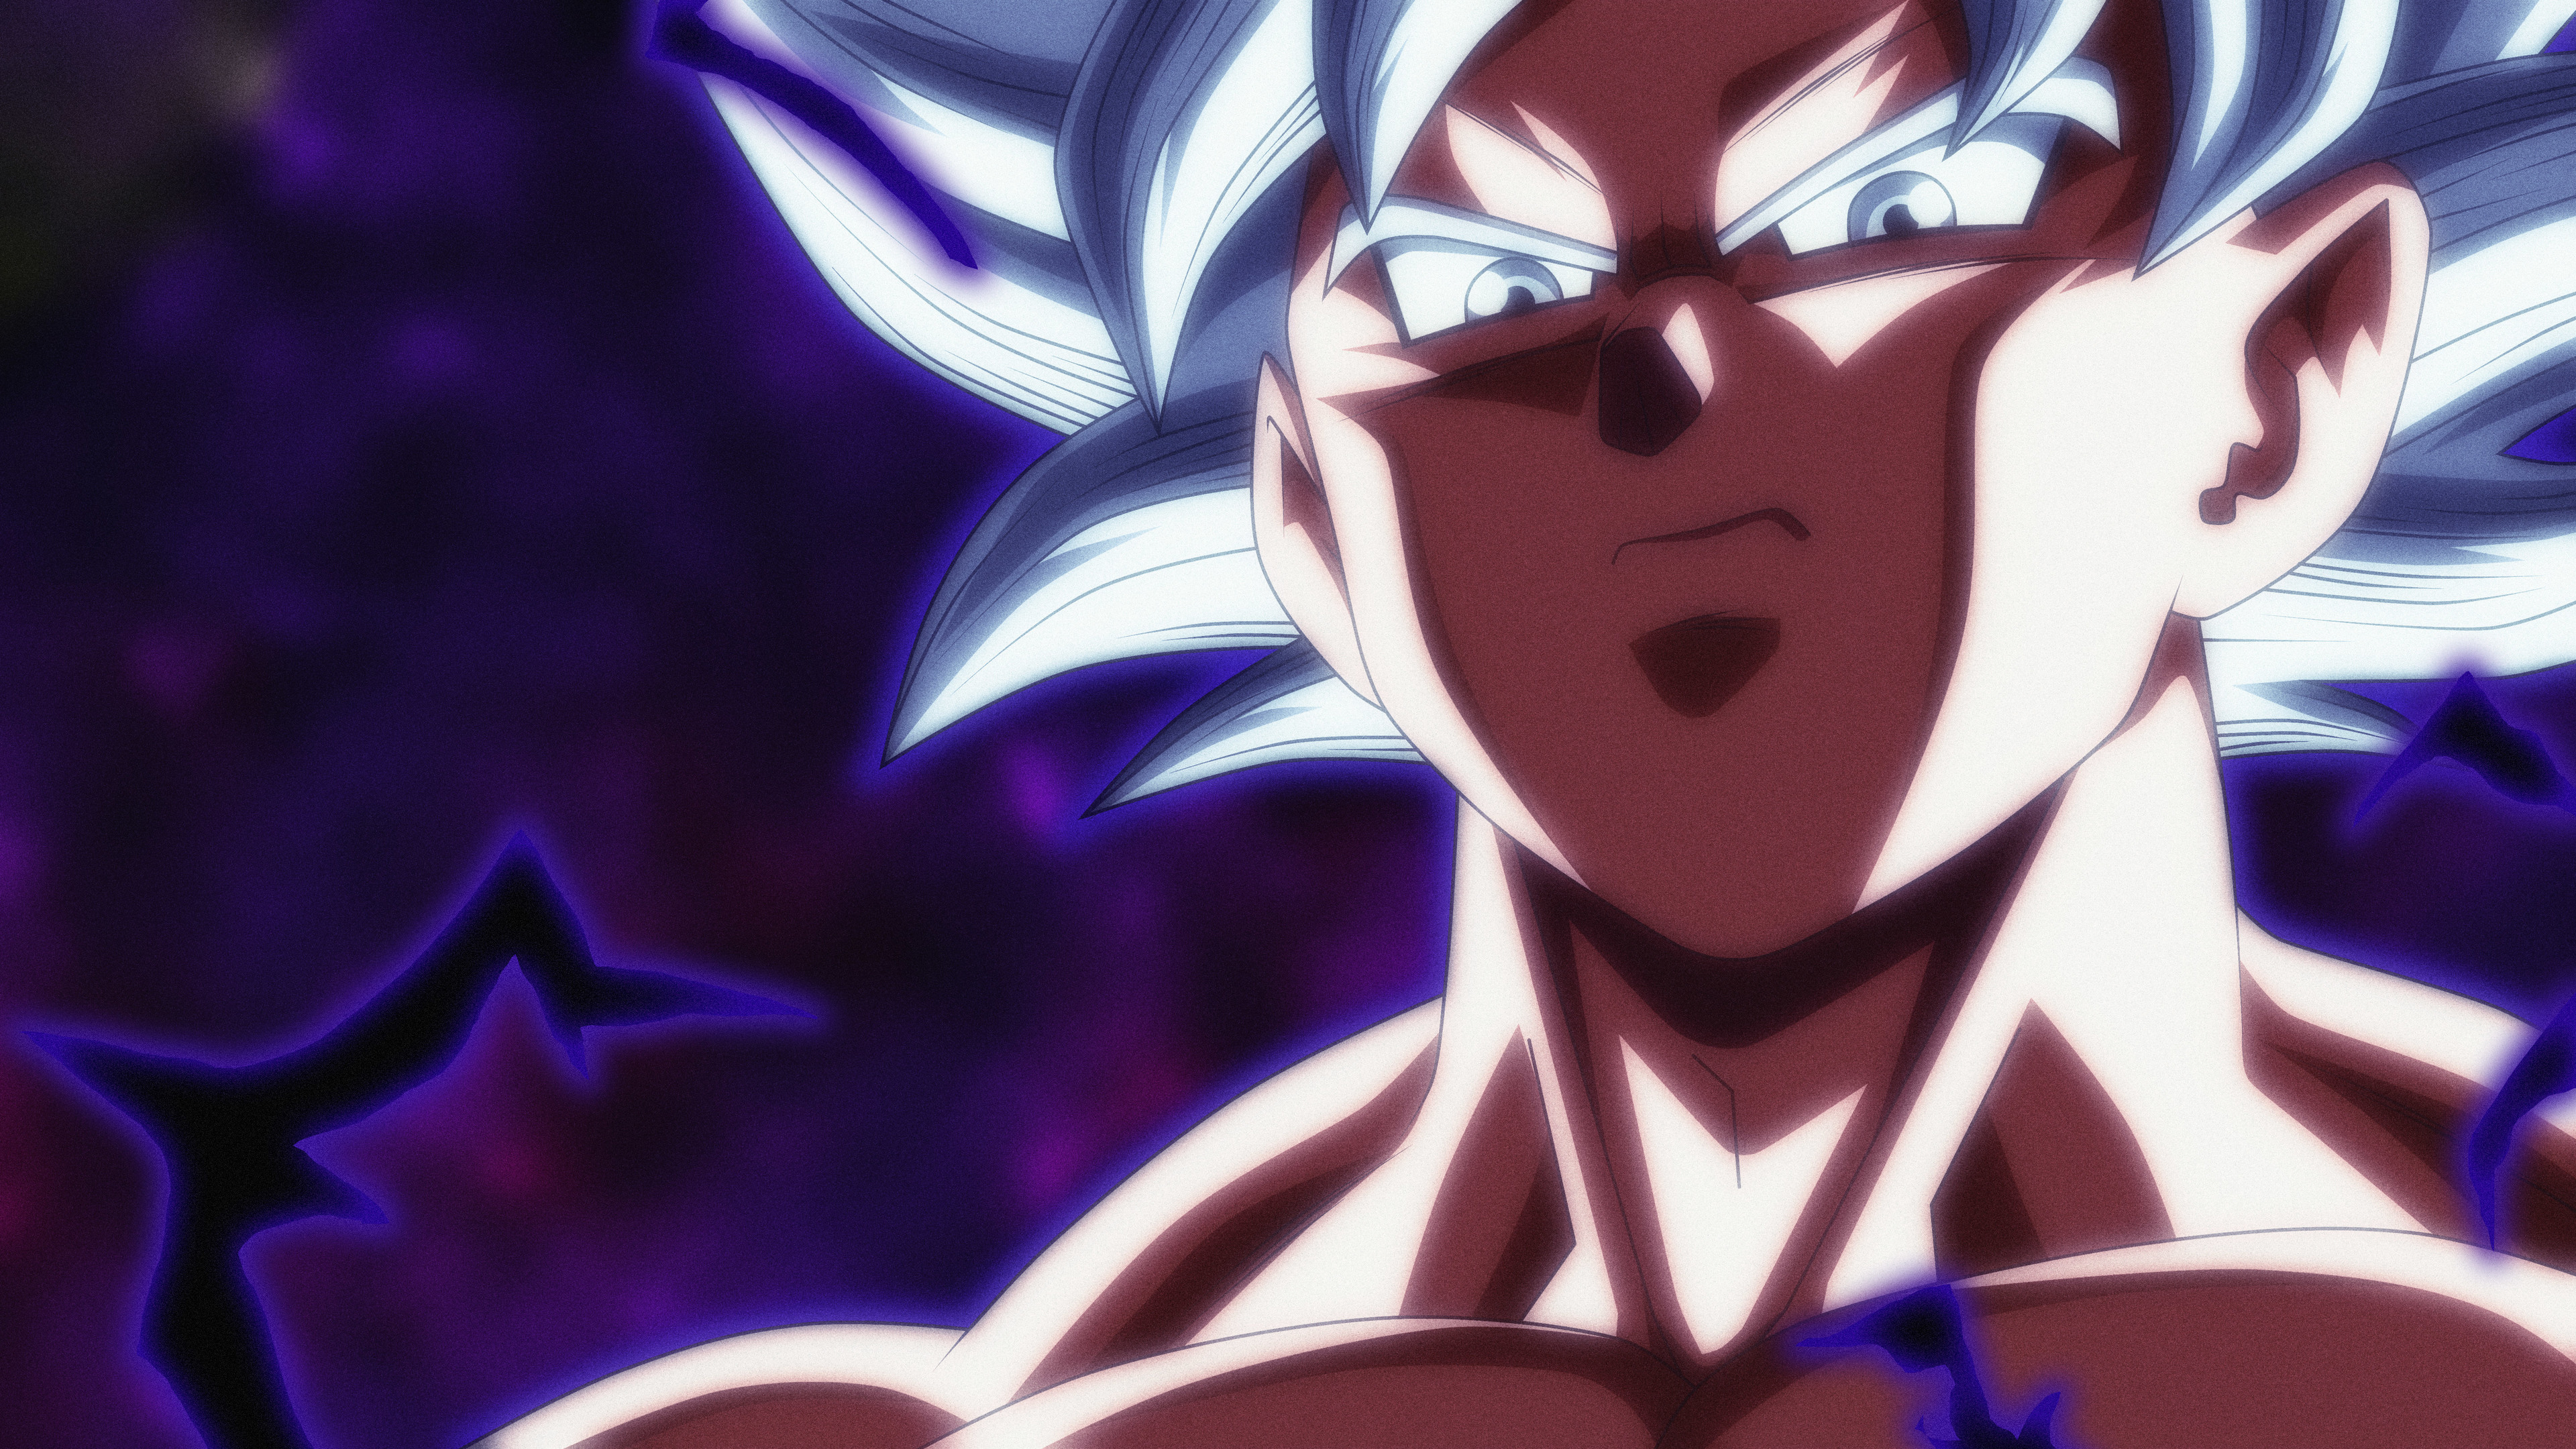 son goku dragon ball super anime 4k 1541974383 - Son Goku Dragon Ball Super Anime 4k - hd-wallpapers, goku wallpapers, dragon ball wallpapers, dragon ball super wallpapers, anime wallpapers, 4k-wallpapers